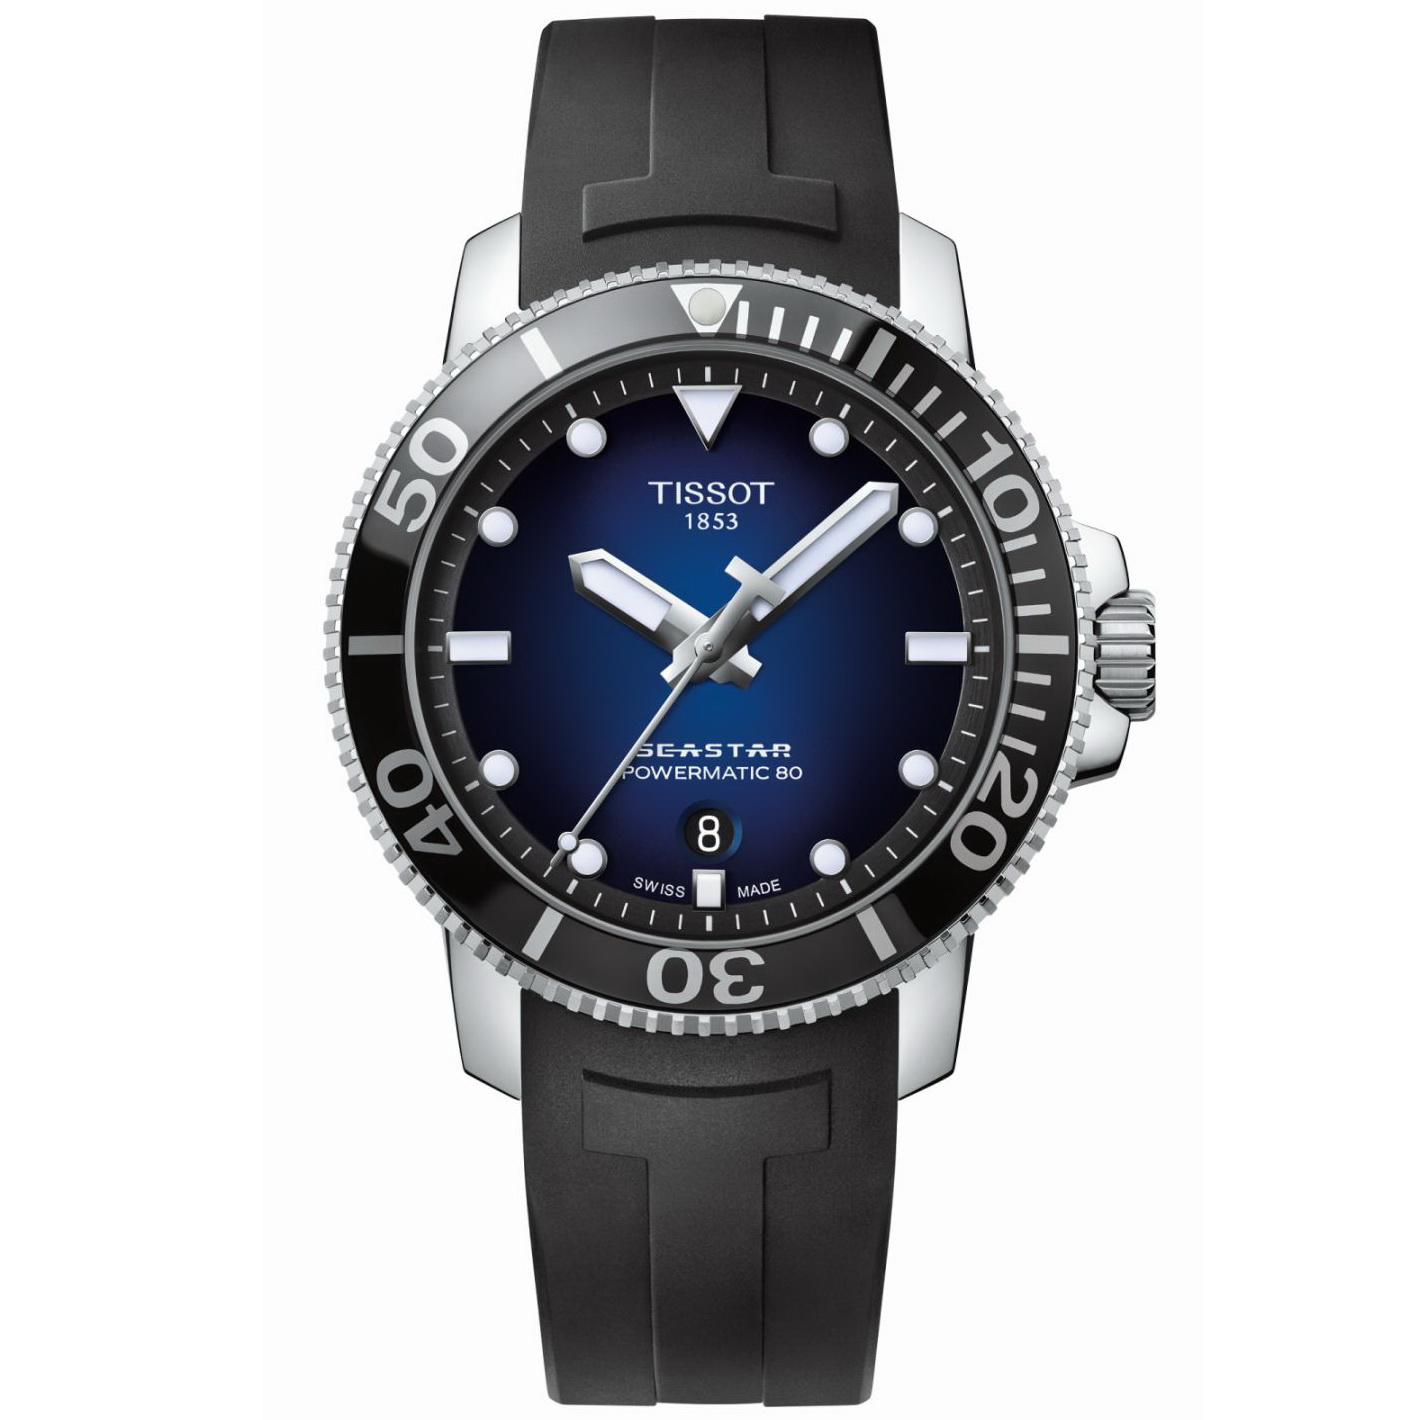 TIssot Seastar 1000 Powermatic 80 Diver